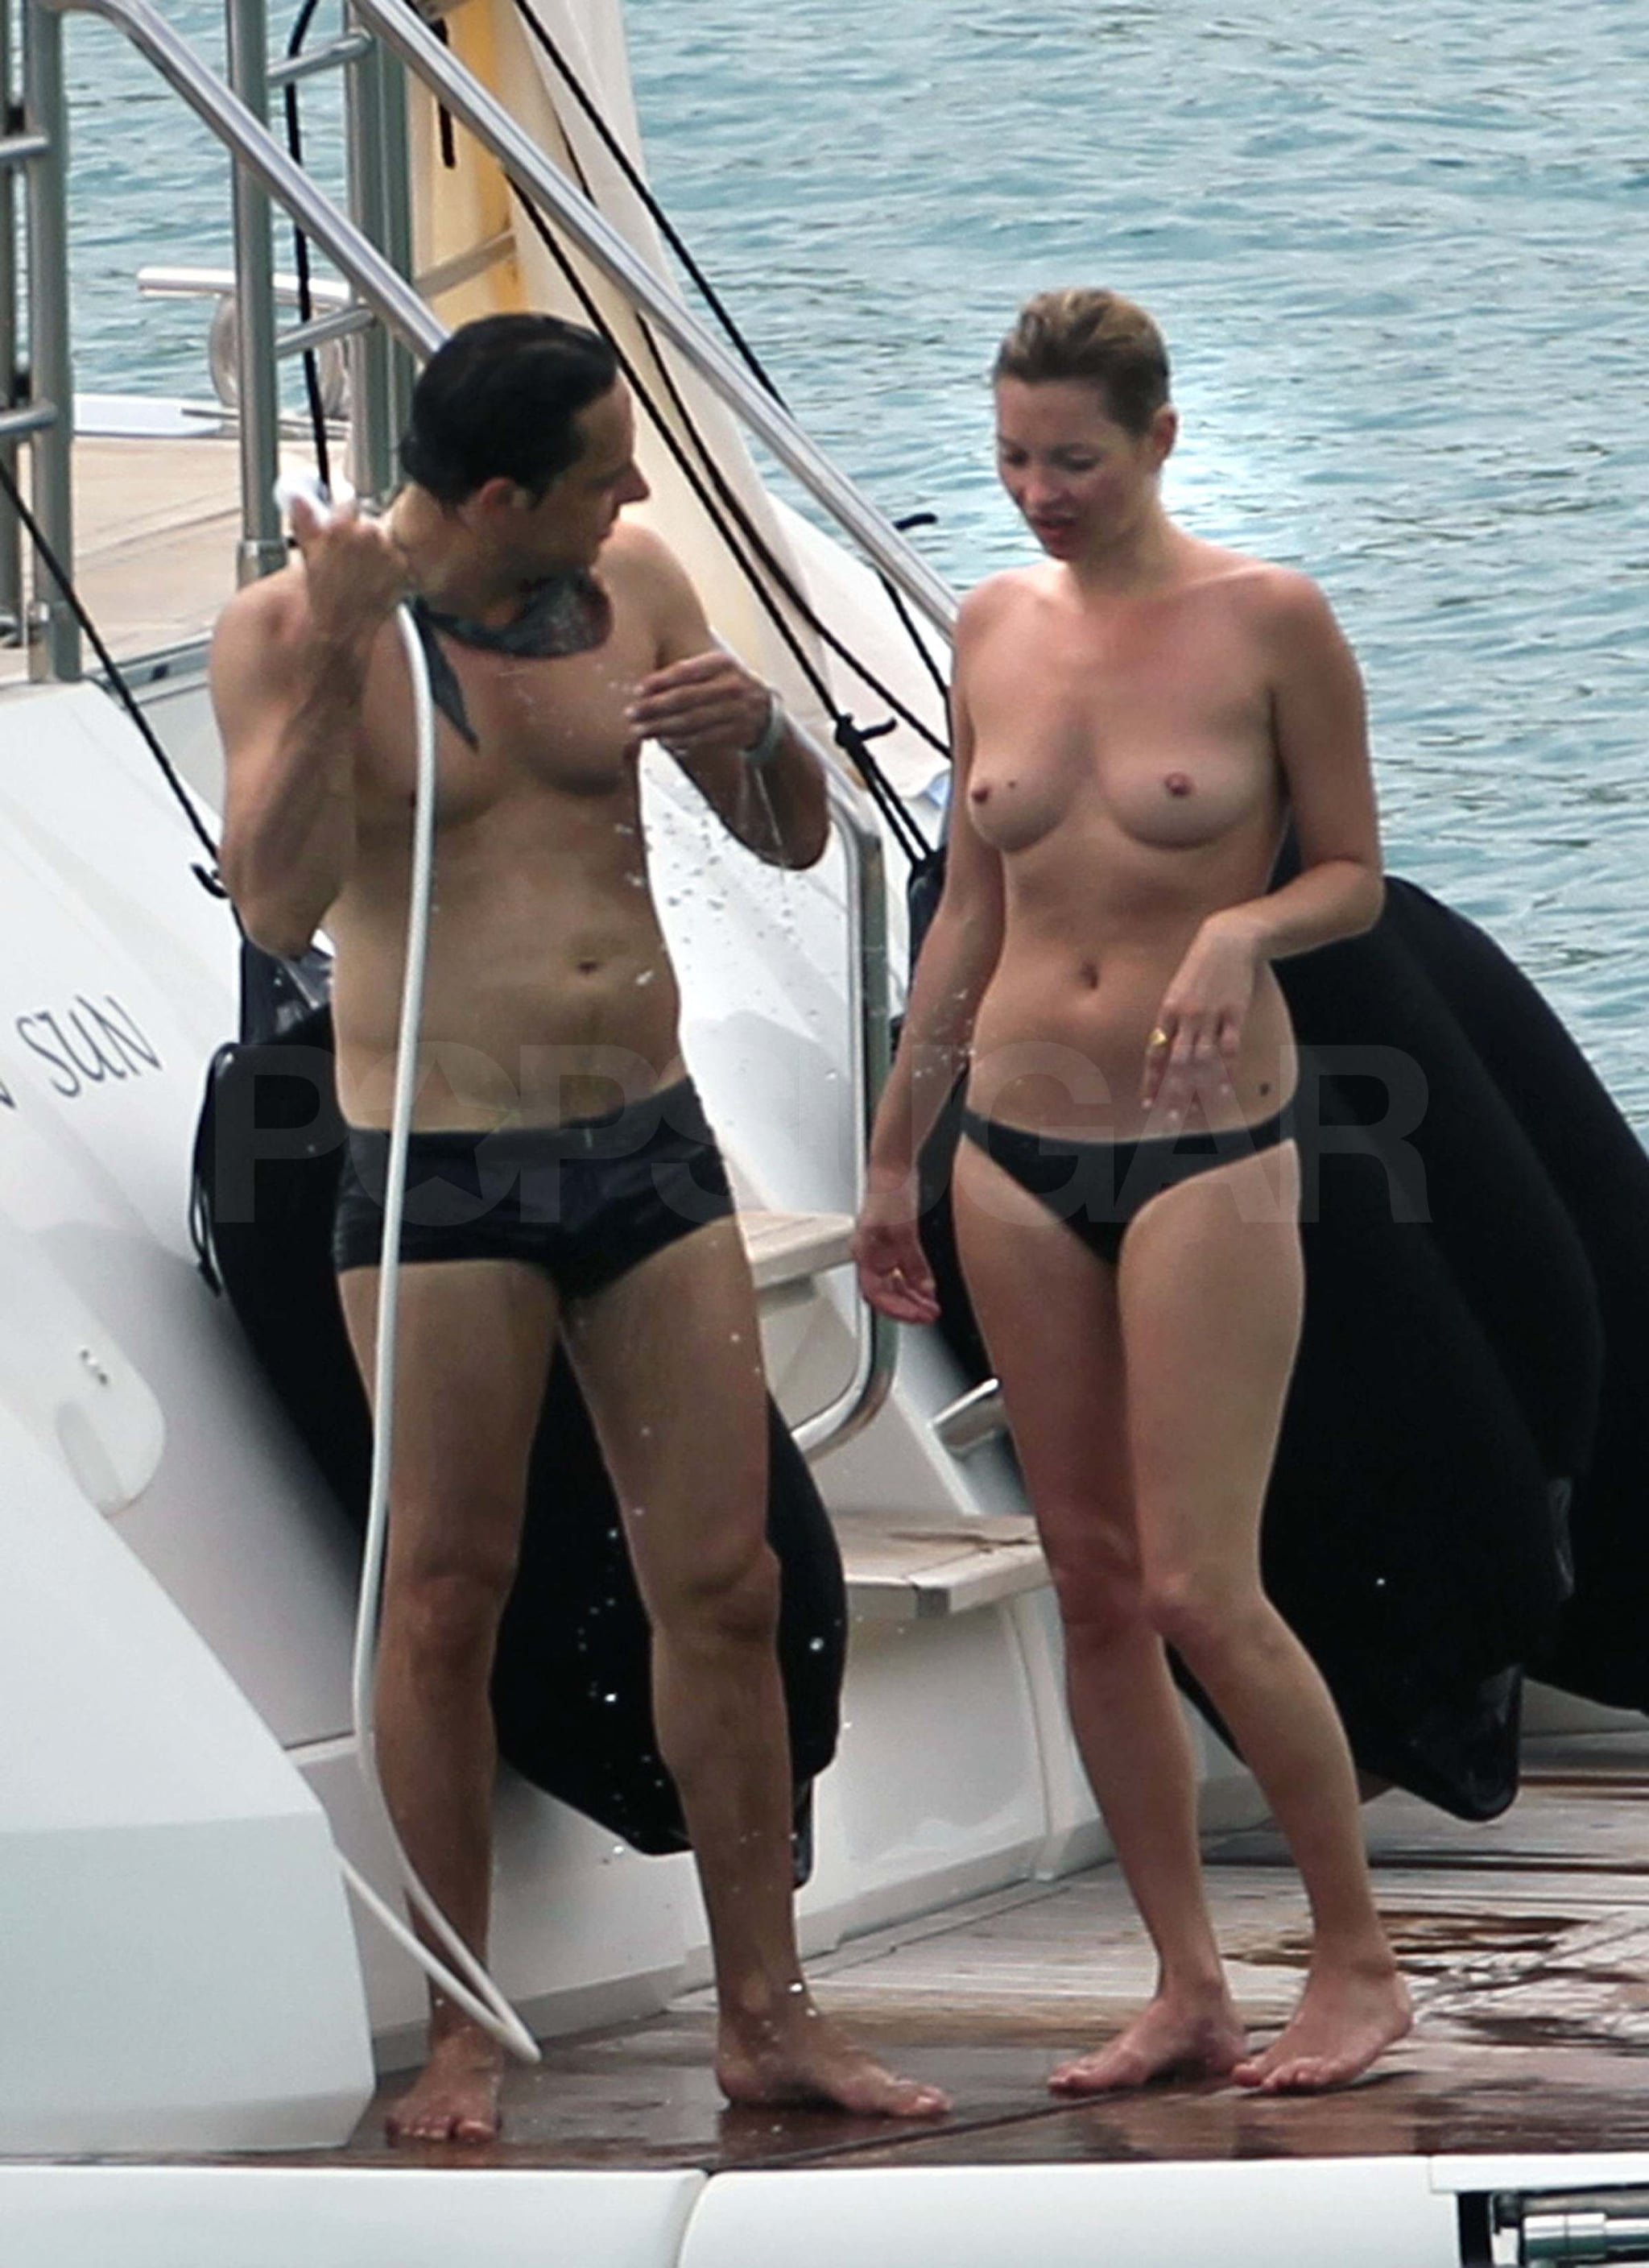 St Barths Topless photo 30